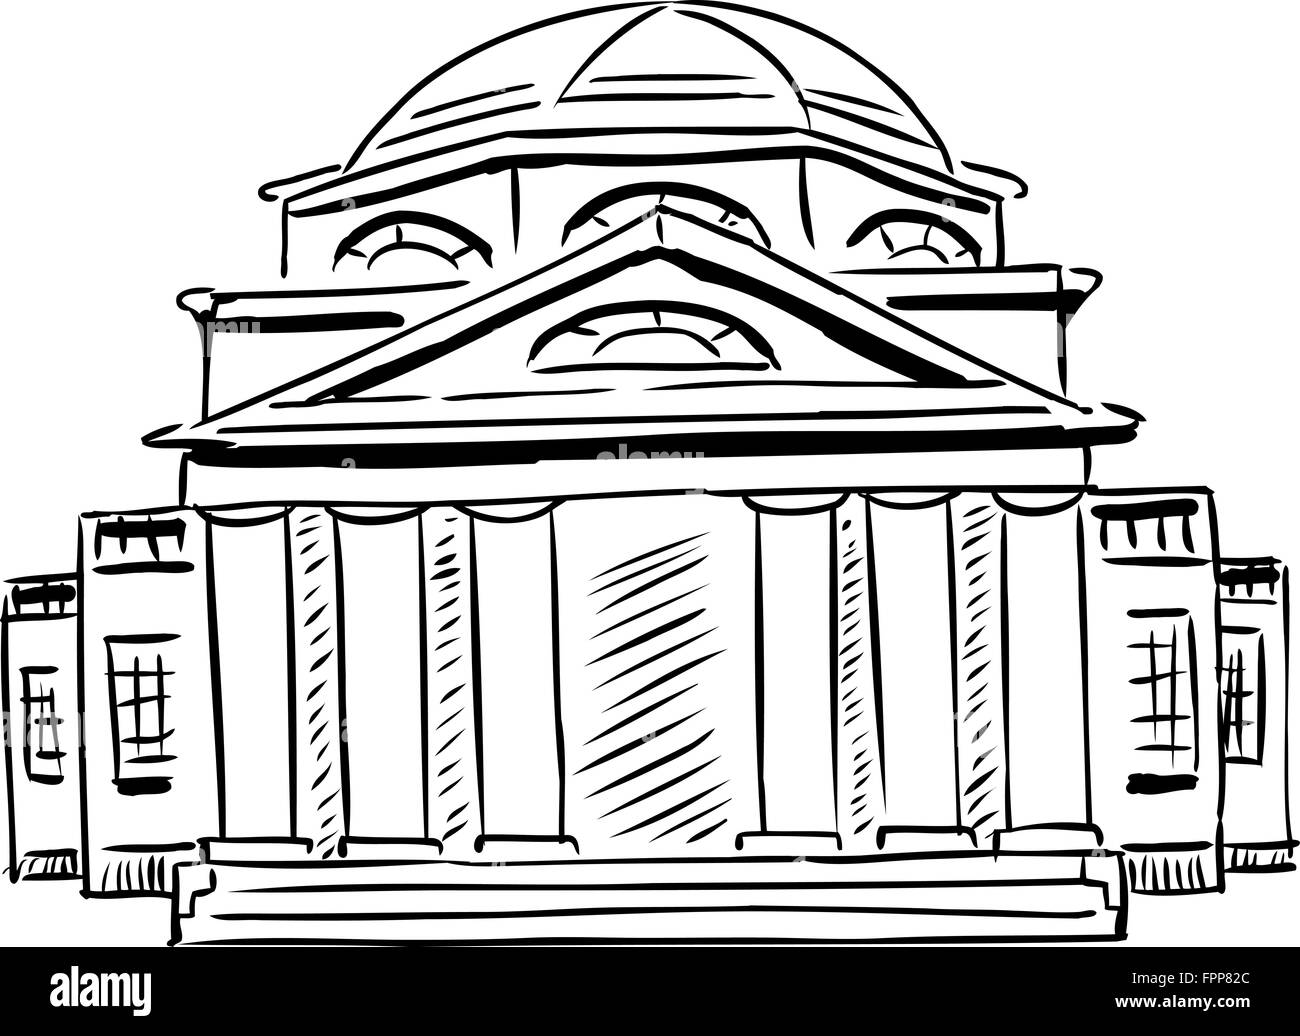 Outlined exterior front view on single neoclassical building with obscured doorway and domed roof - Stock Image